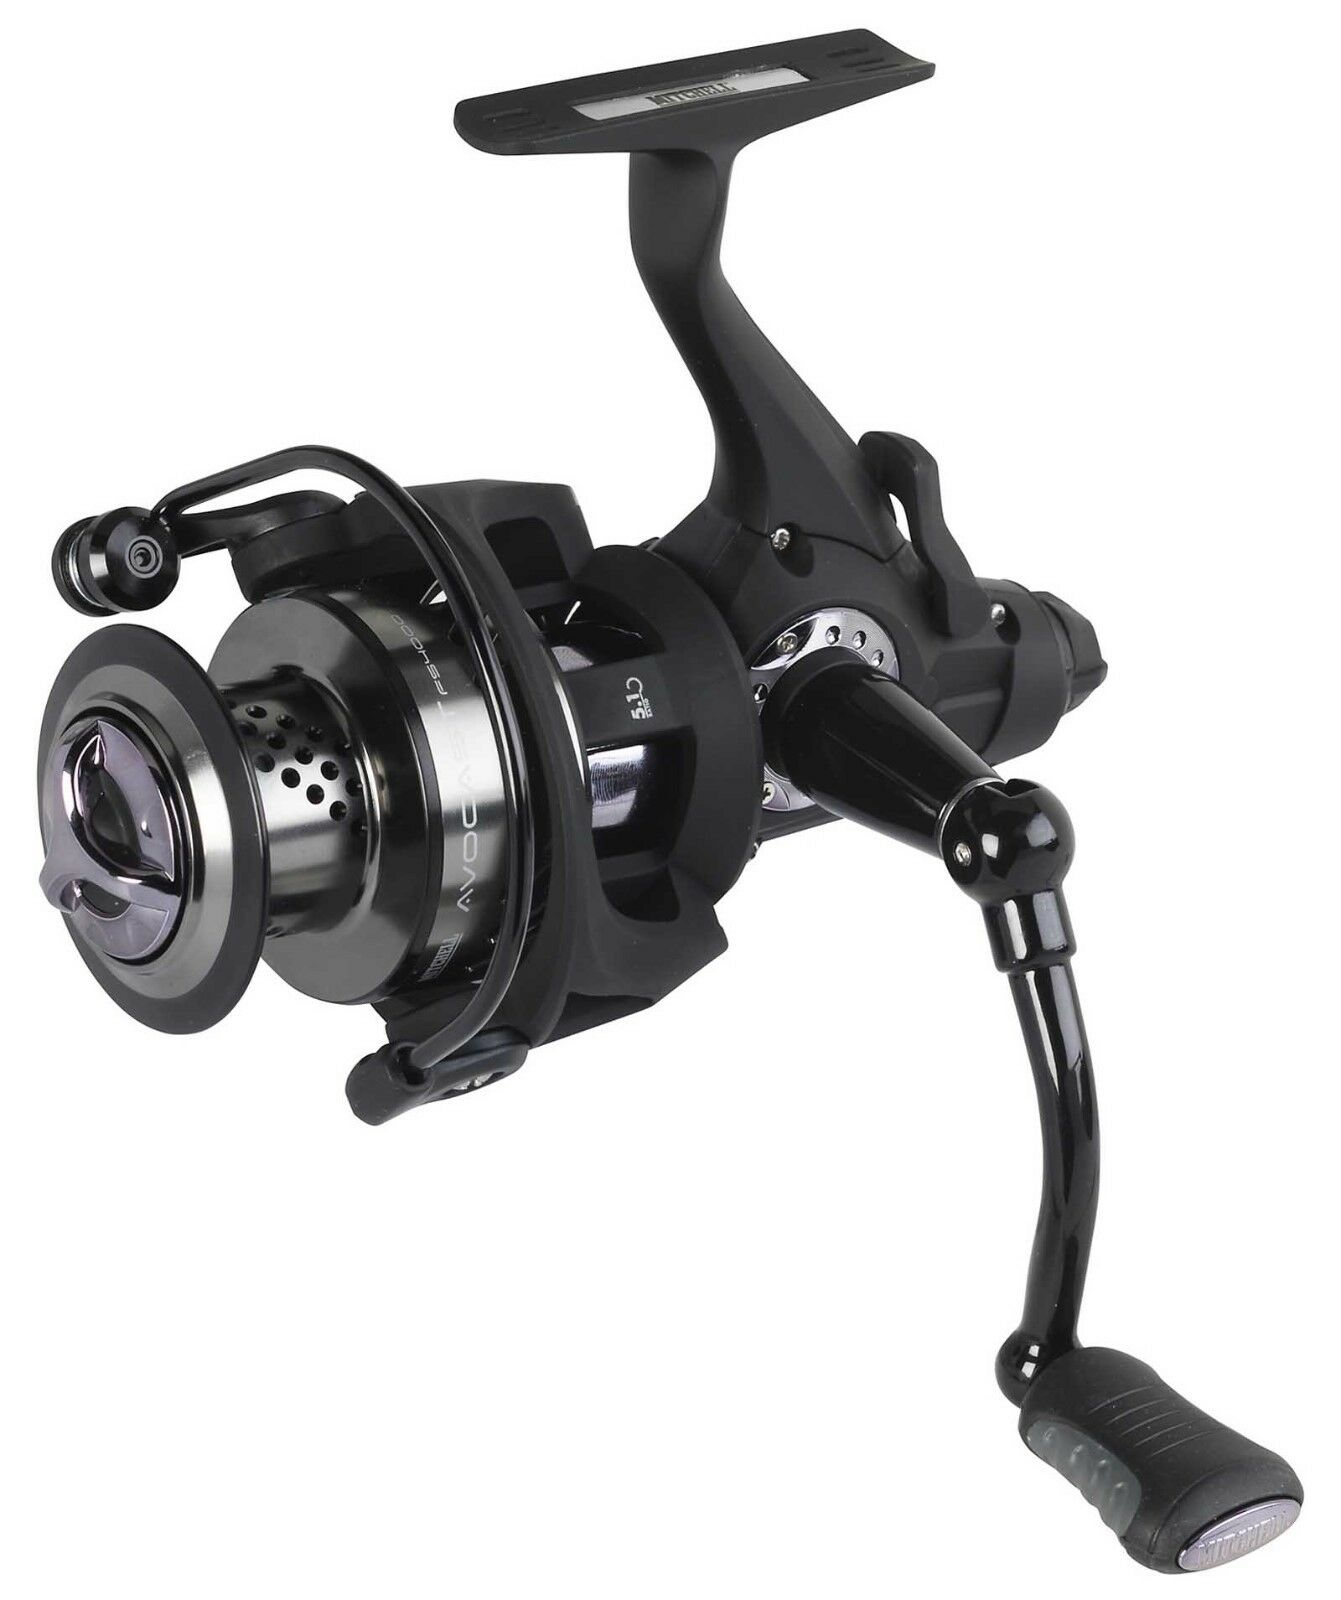 Mitchell Avocast 6000 FS Free Spool Runner Carp Fishing Spinning  Reel  online sales